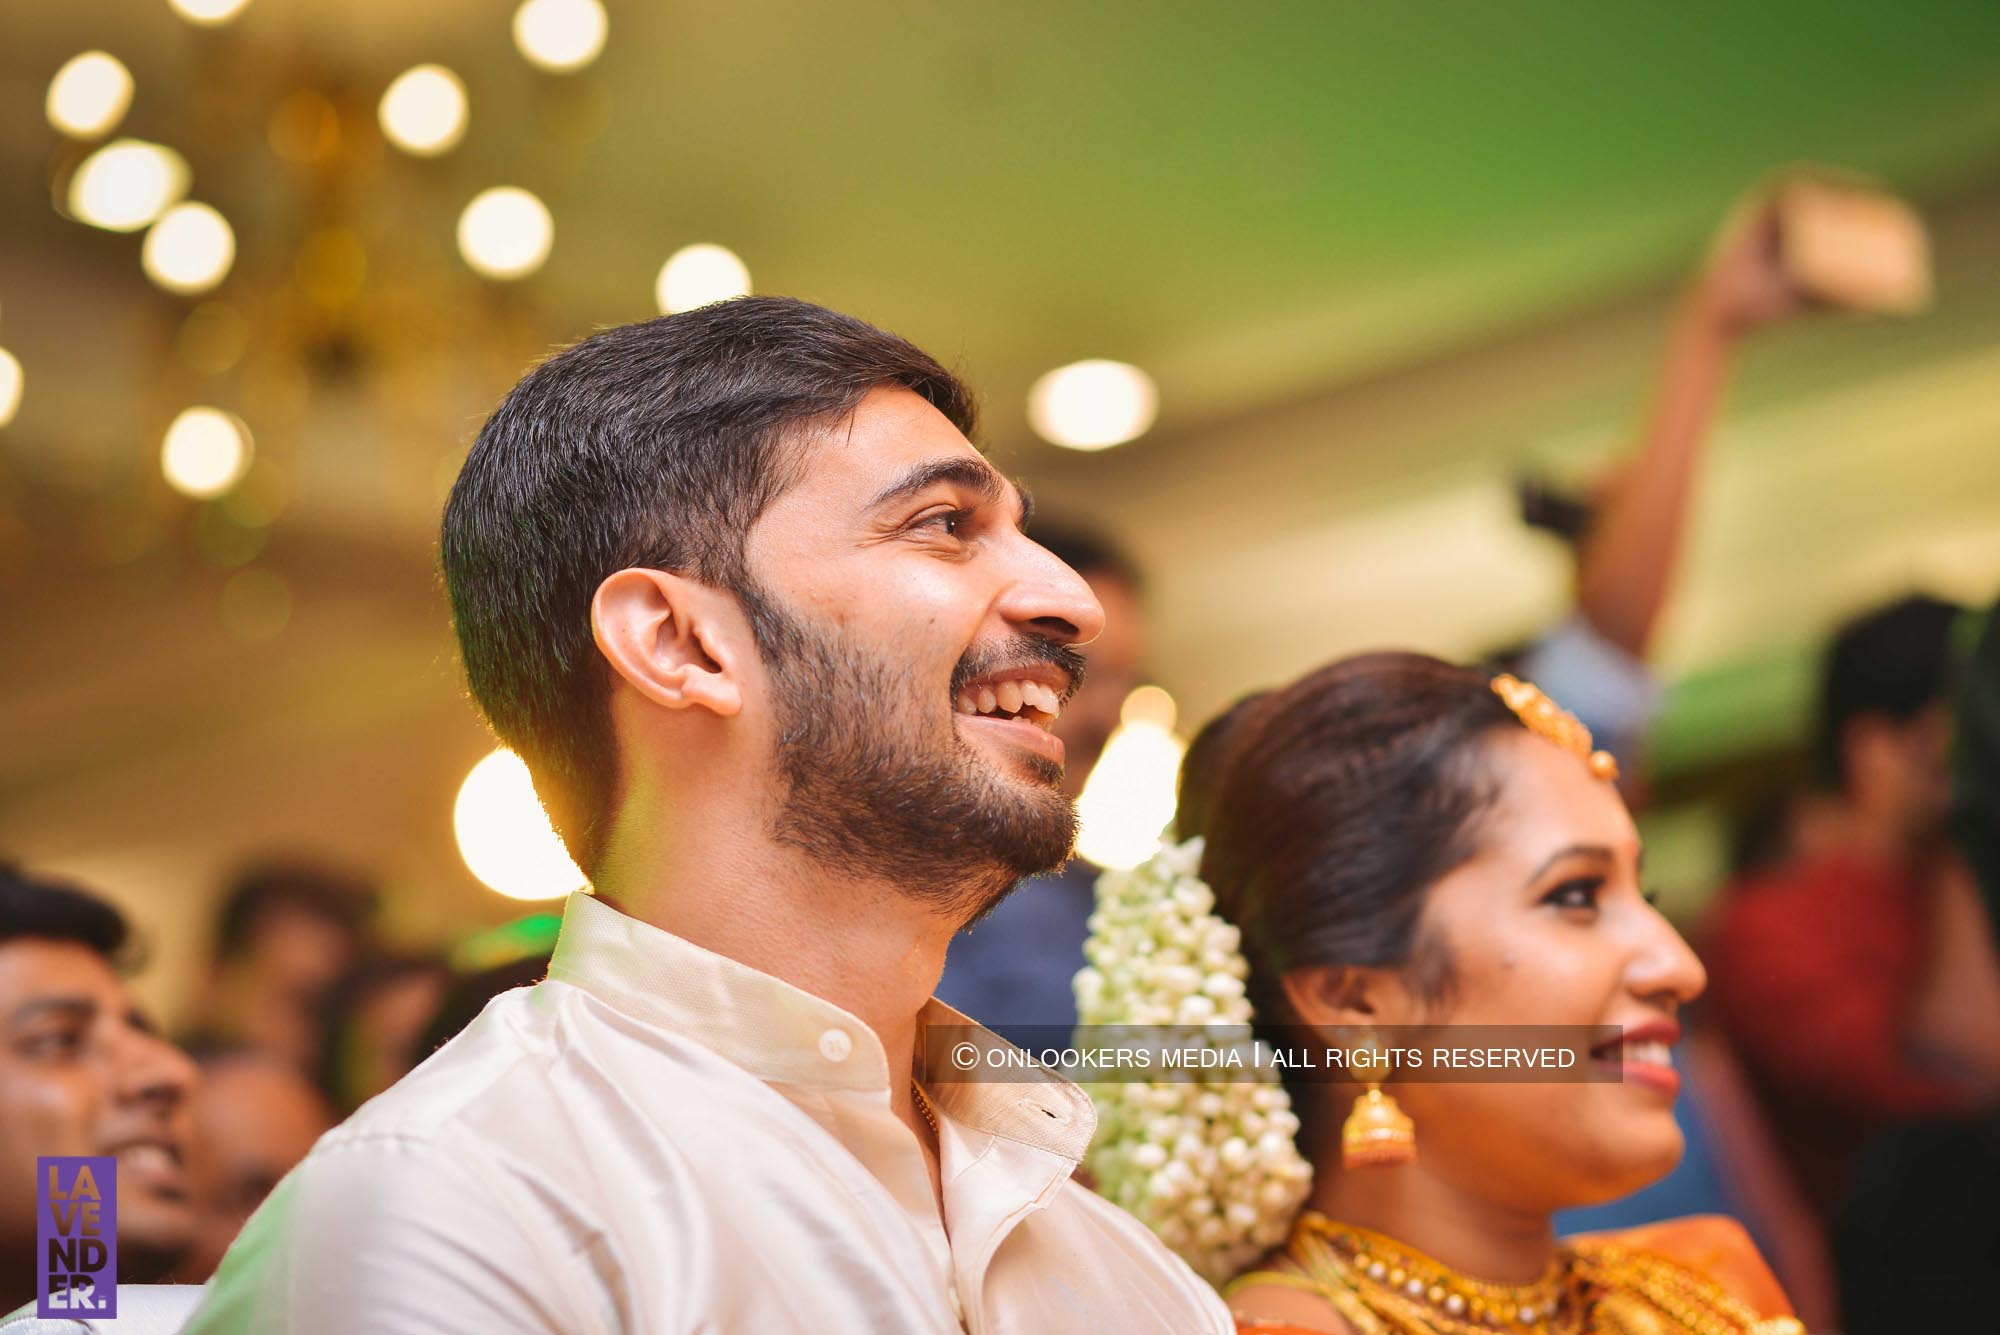 http://onlookersmedia.in/wp-content/uploads/2018/05/sreejith-vijay-wedding-stills-images-137.jpg